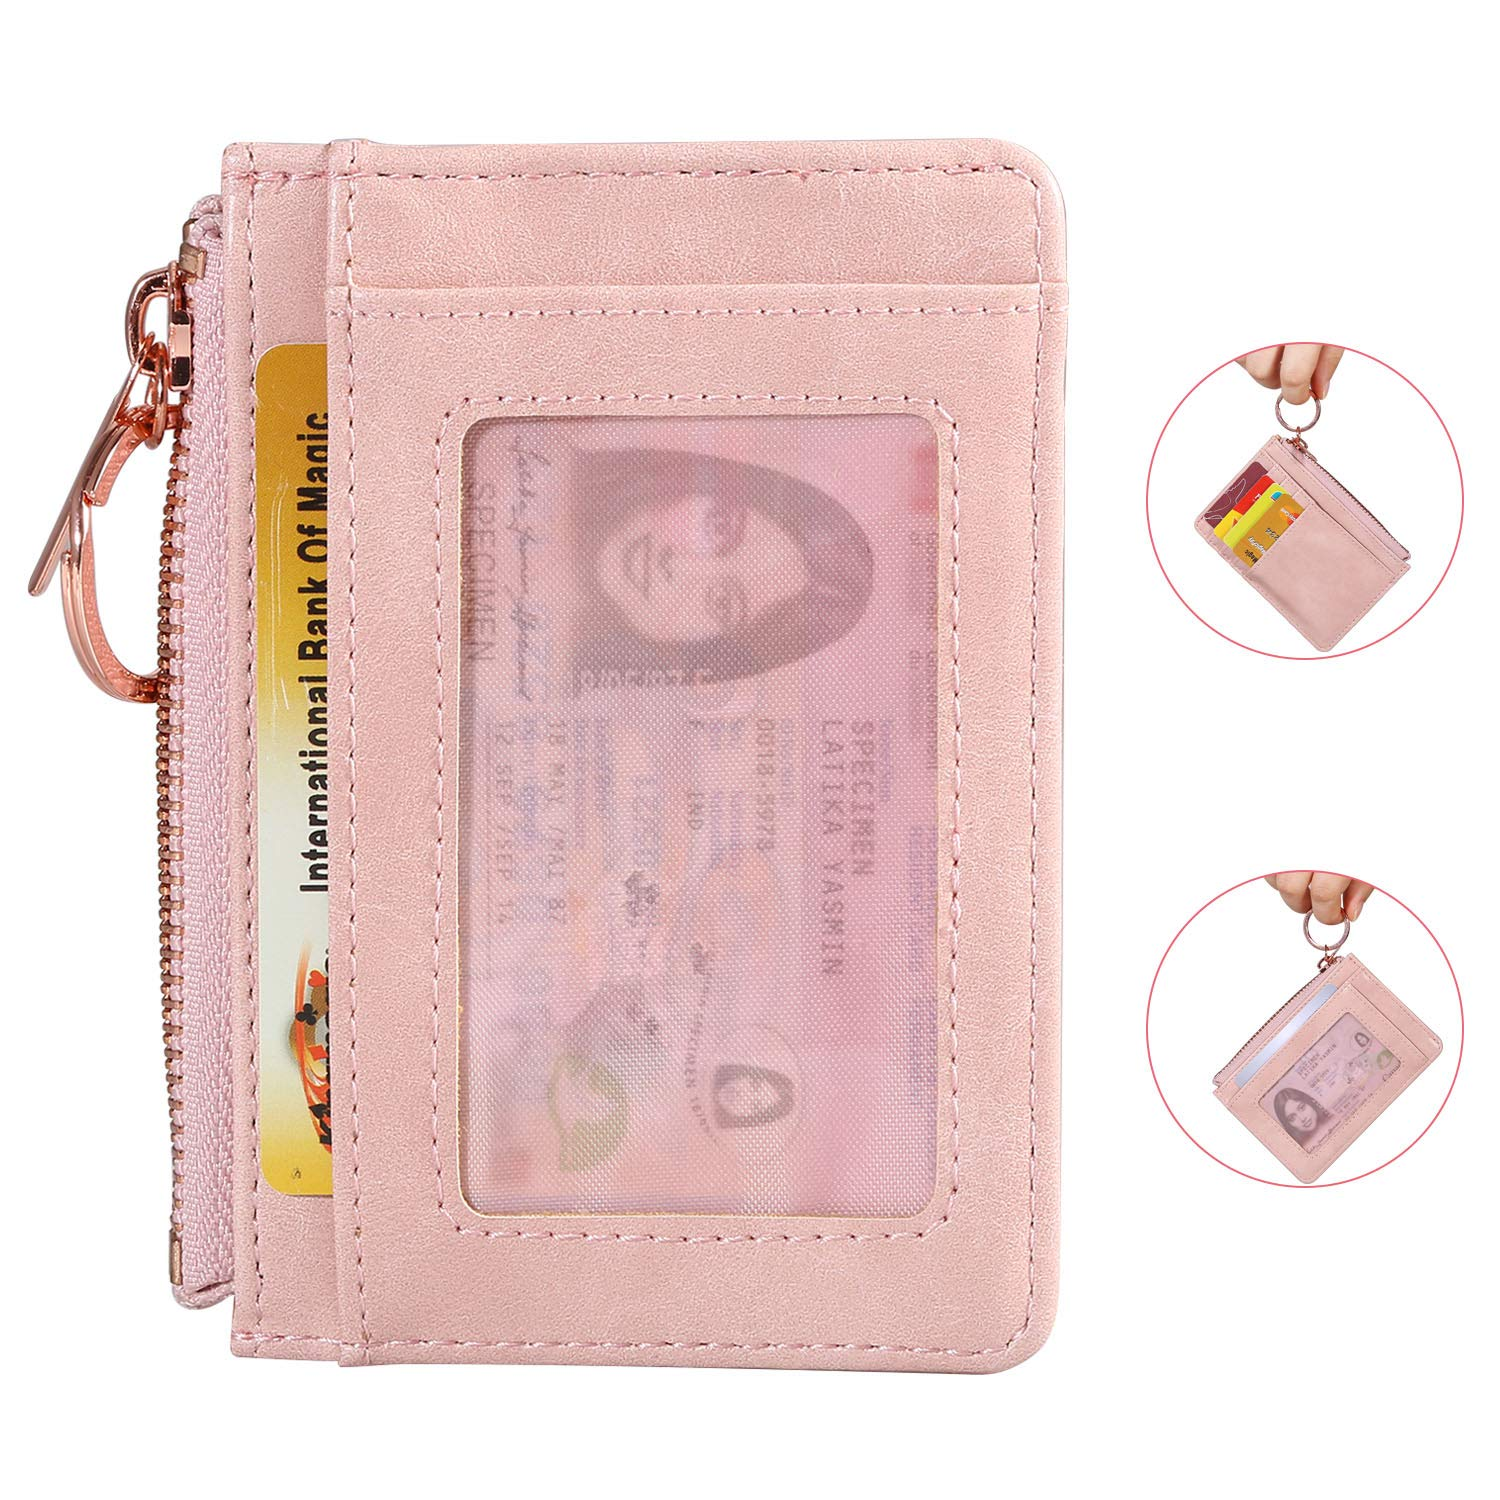 Expouch Key Wallet PU Leather Credit Card Case Wallet Lanyard Coins Purse with ID Window